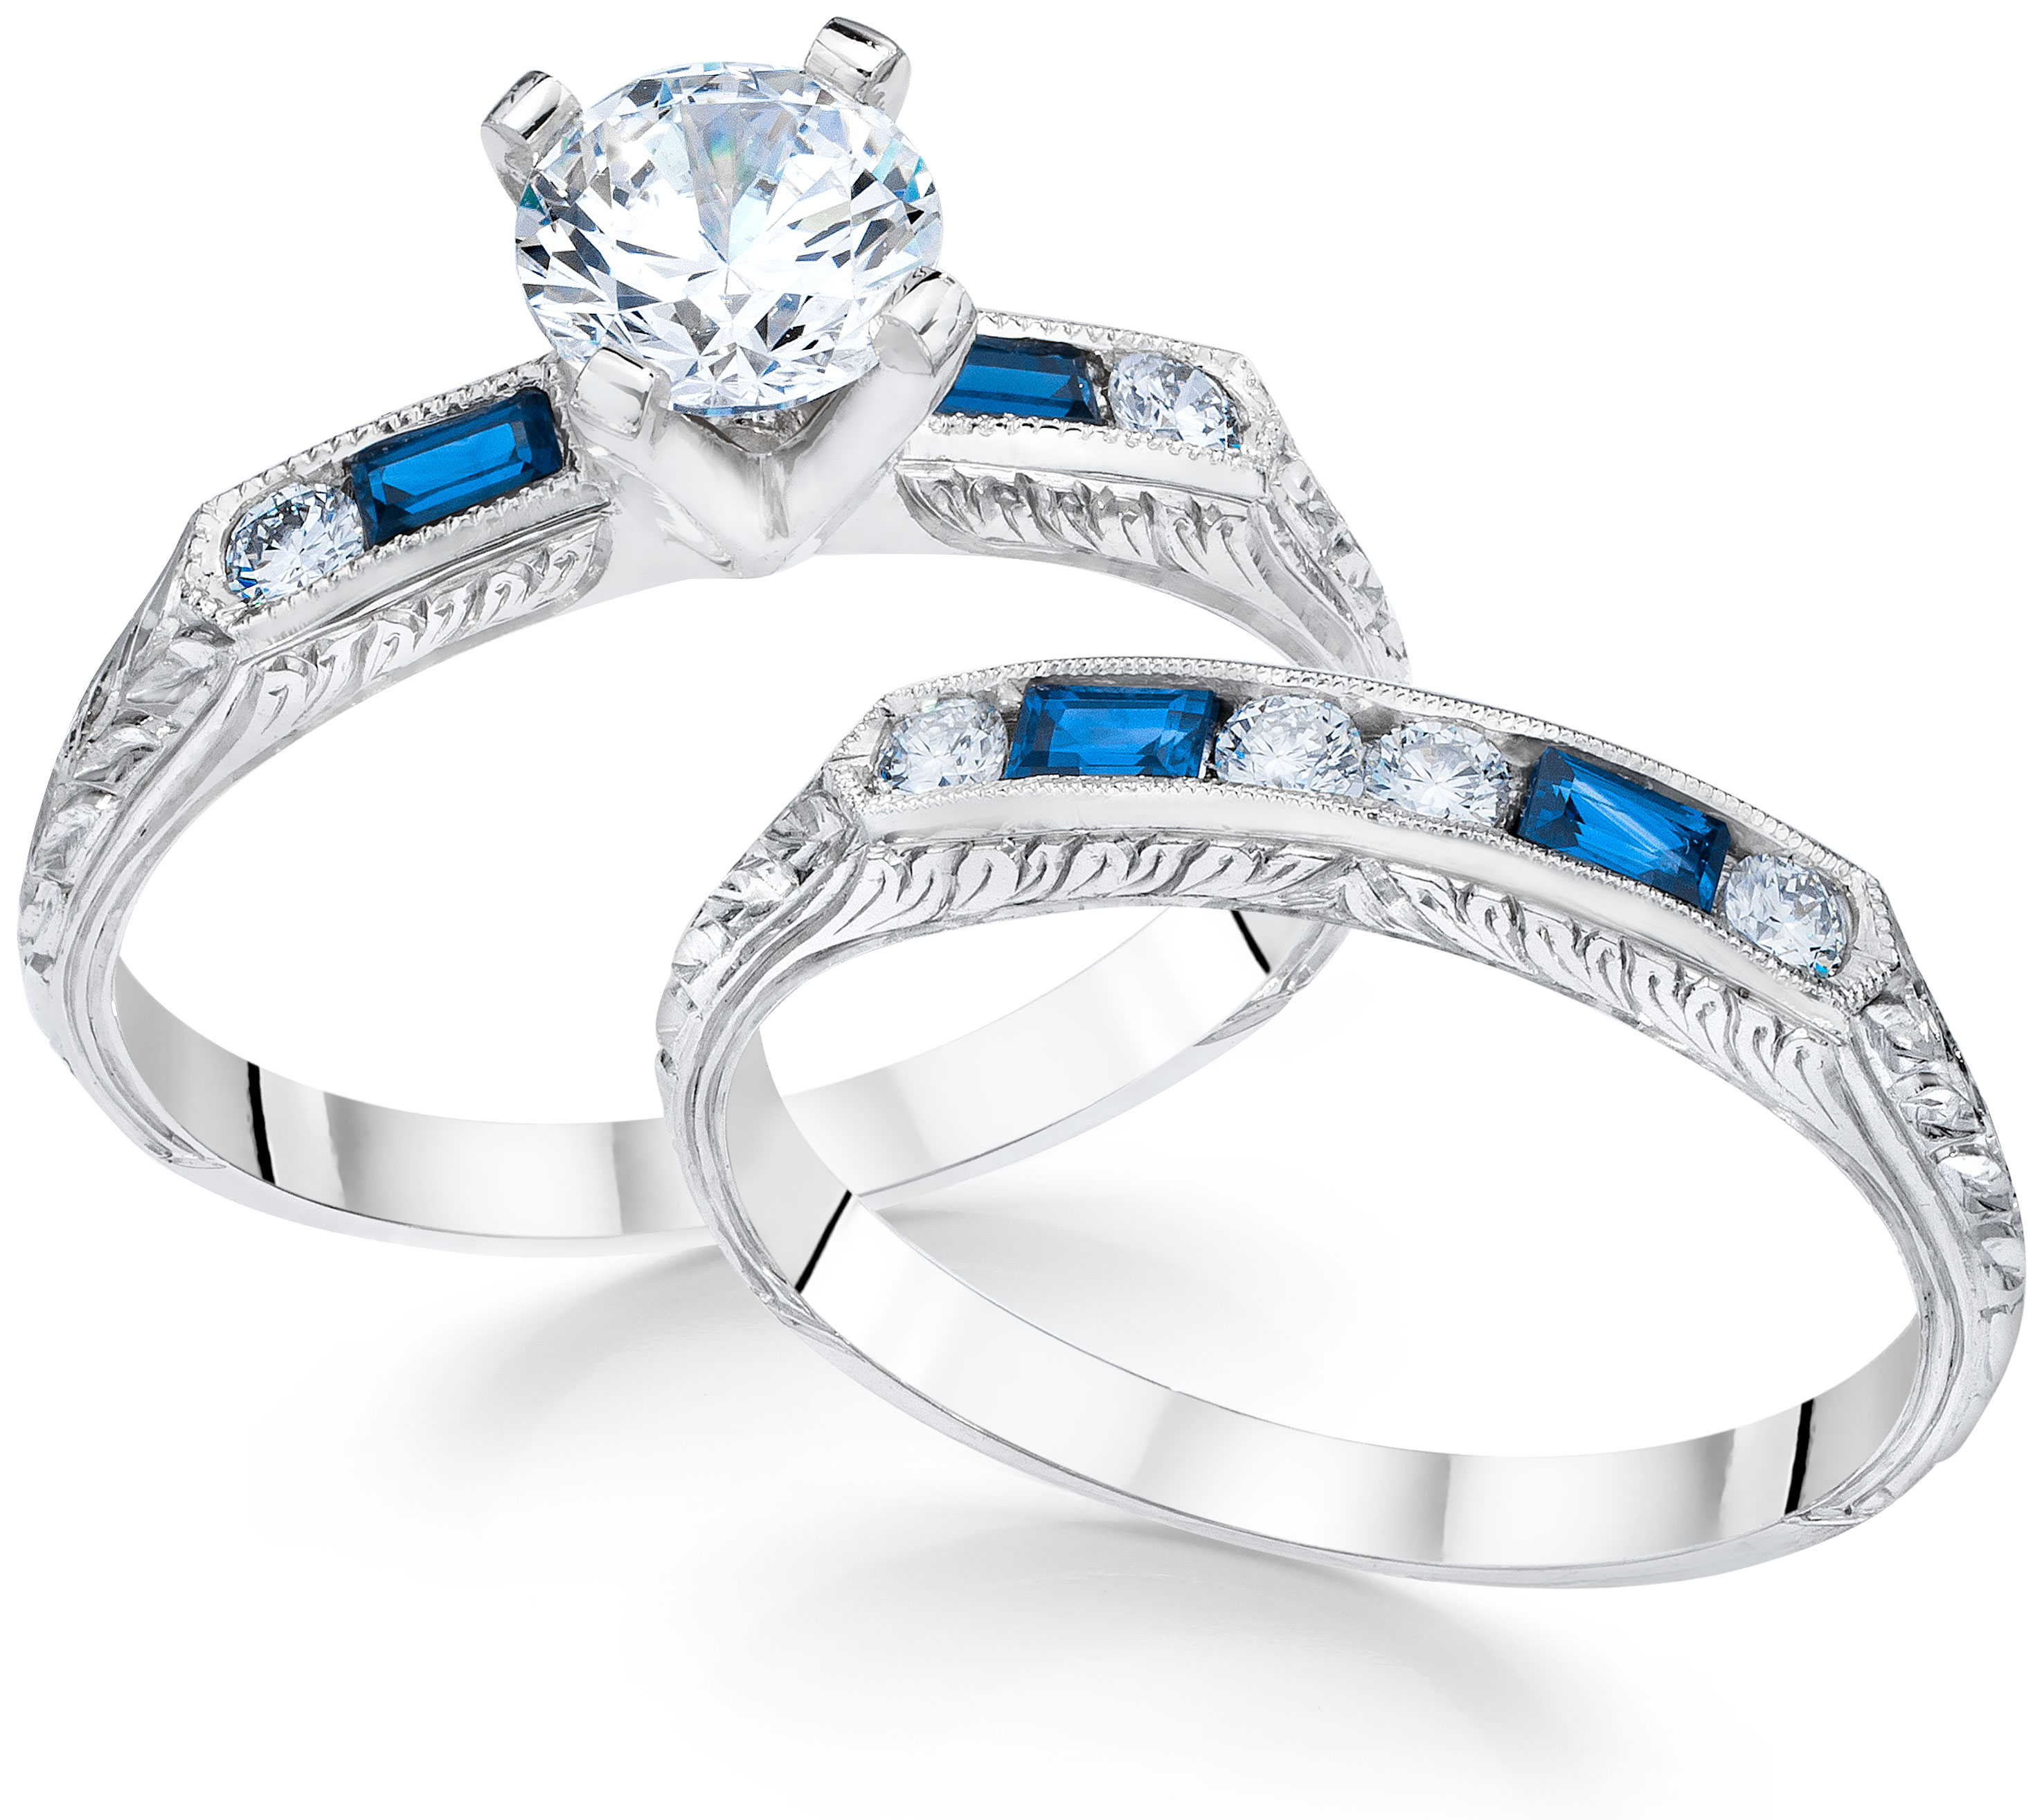 for ring wedding graff diamond her sapphires diamonds a and band cut bands collections eternity sapphire emerald